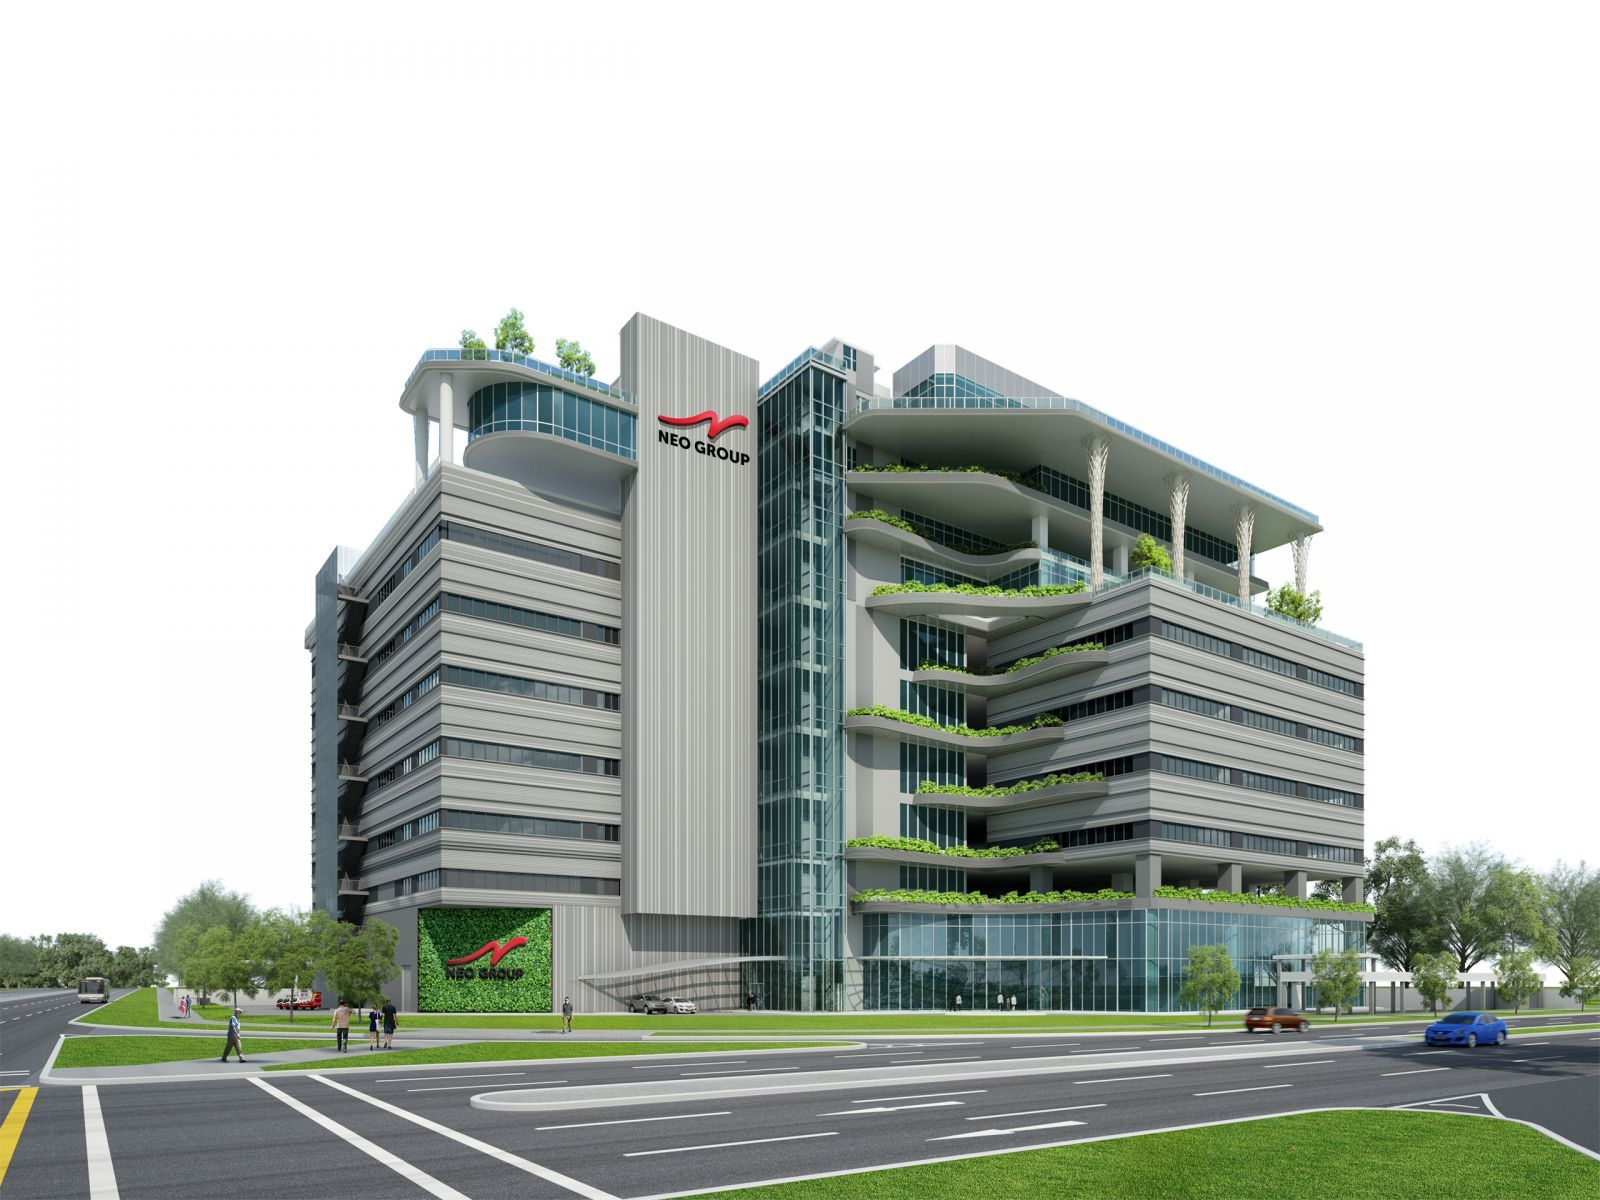 Neo Group's new high-tech headquarters and catering hub